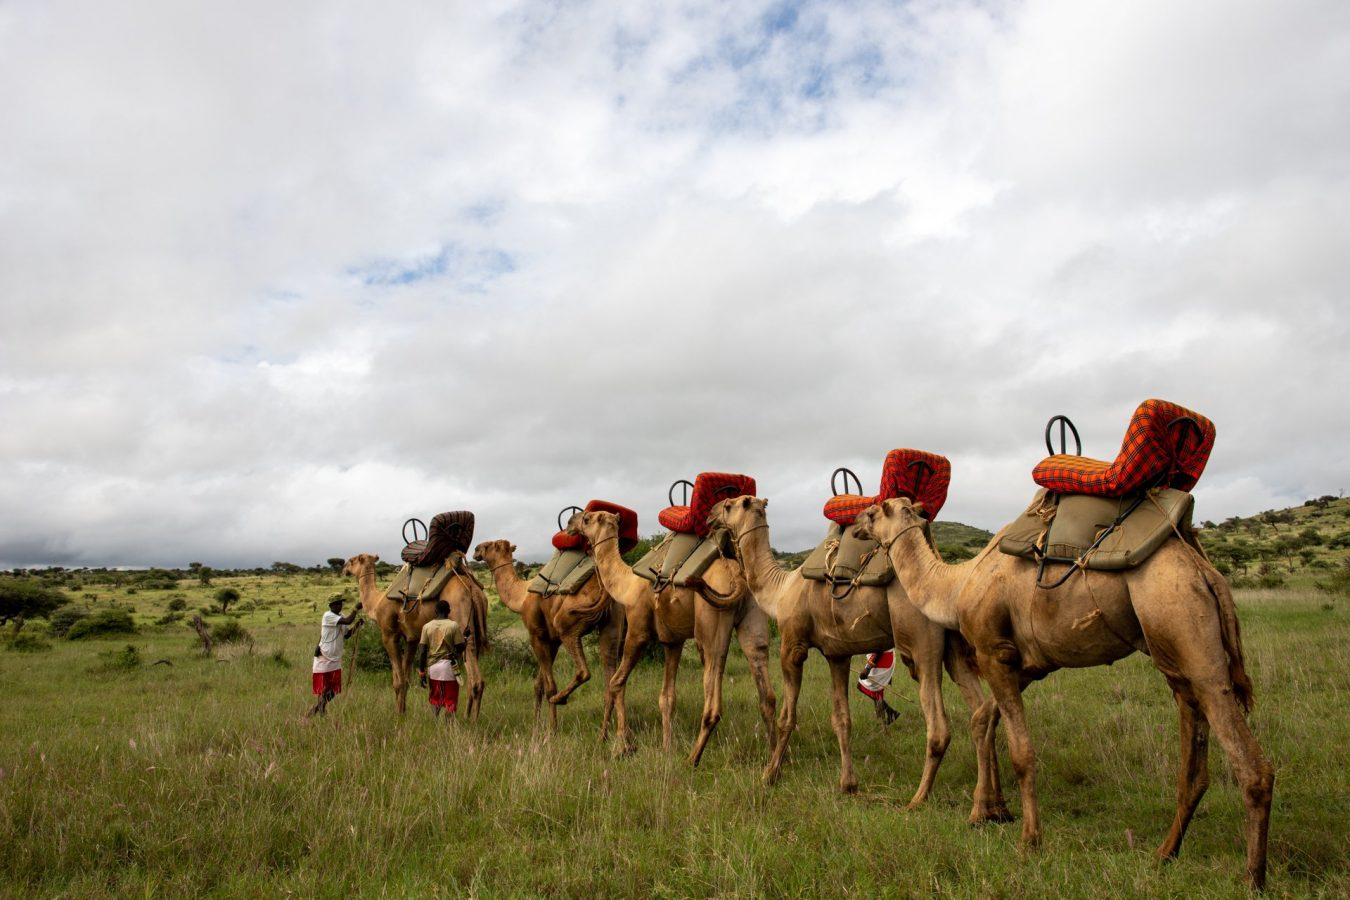 Camels all lined up, ready for our ride